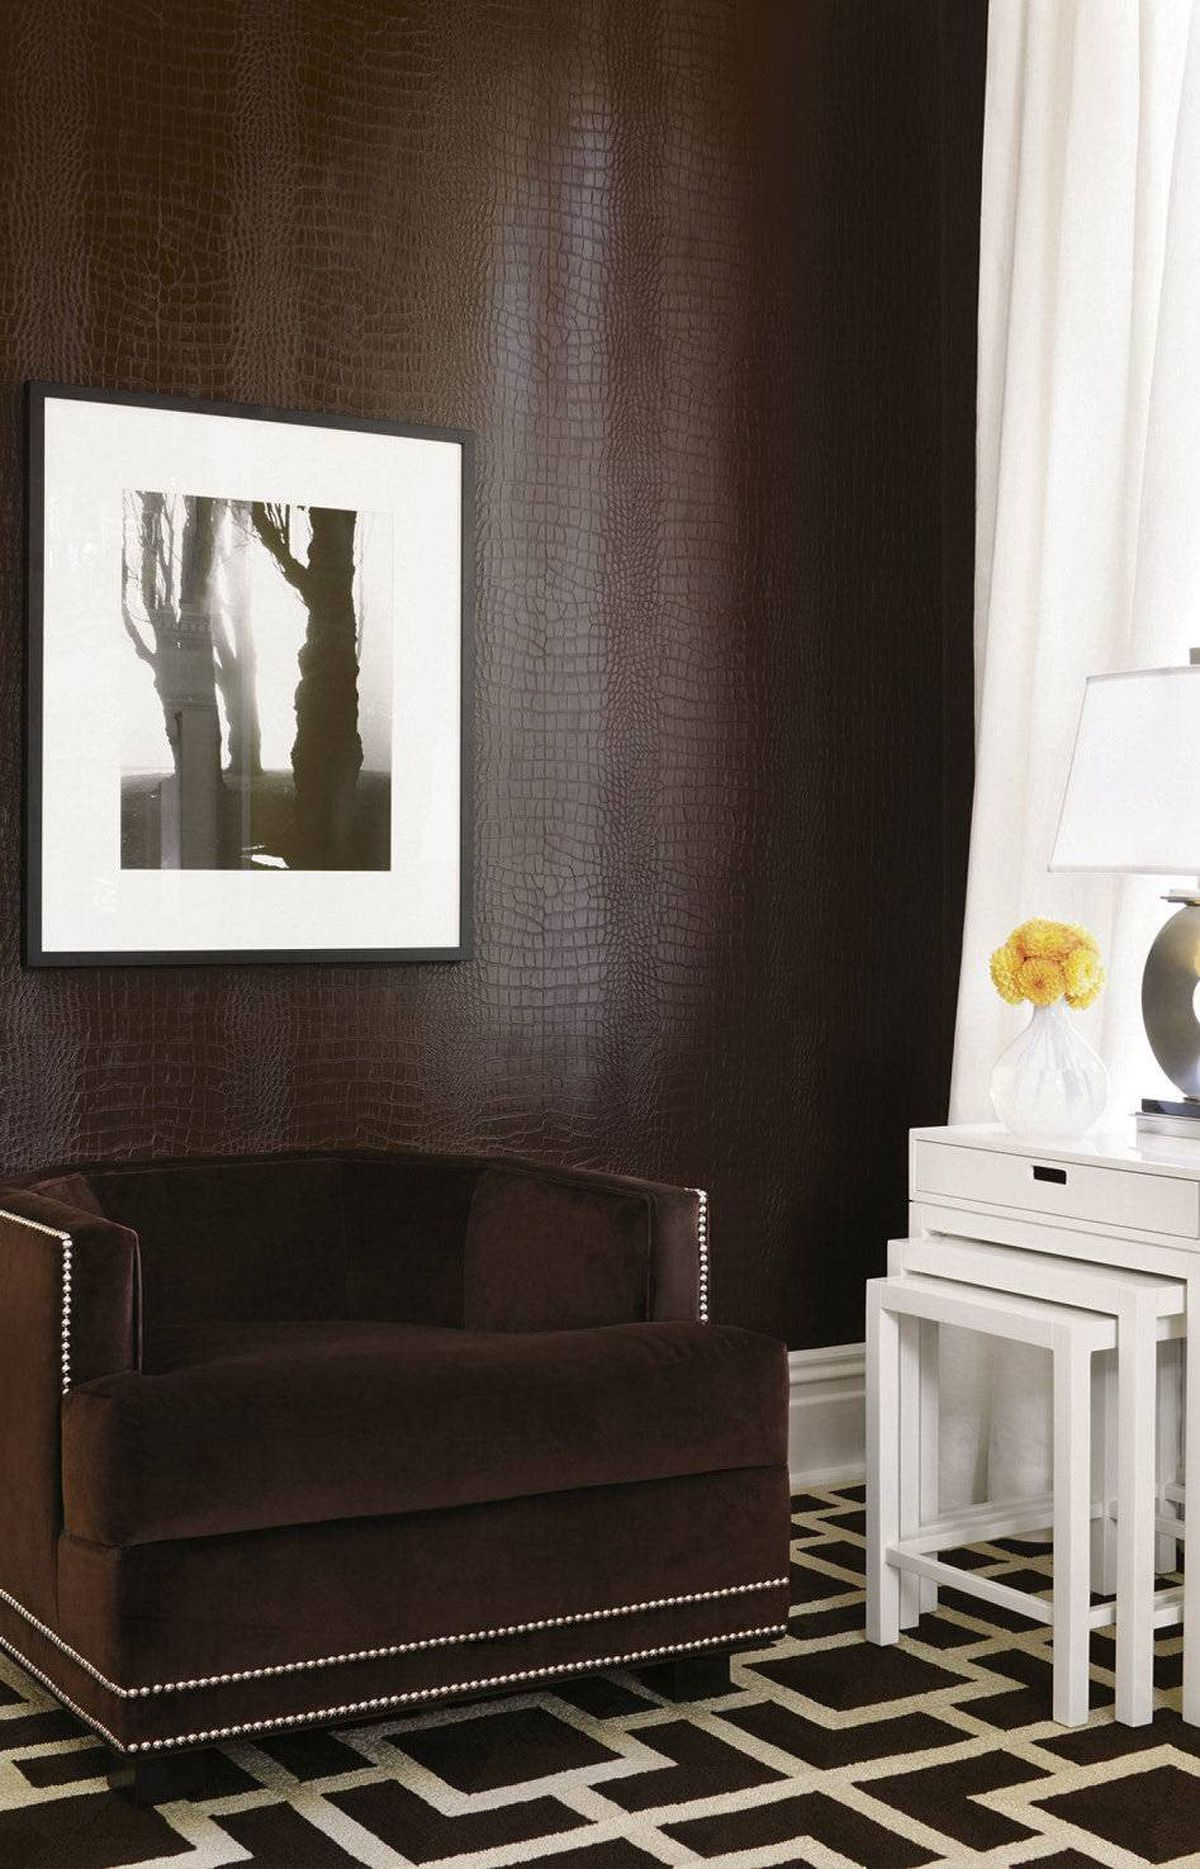 FAUX CROCODILE Greater Gator in Espresso(T6802), $79 a roll at Kravet Canada outlets nationwide (visit www.thibautdesign.com for locations)